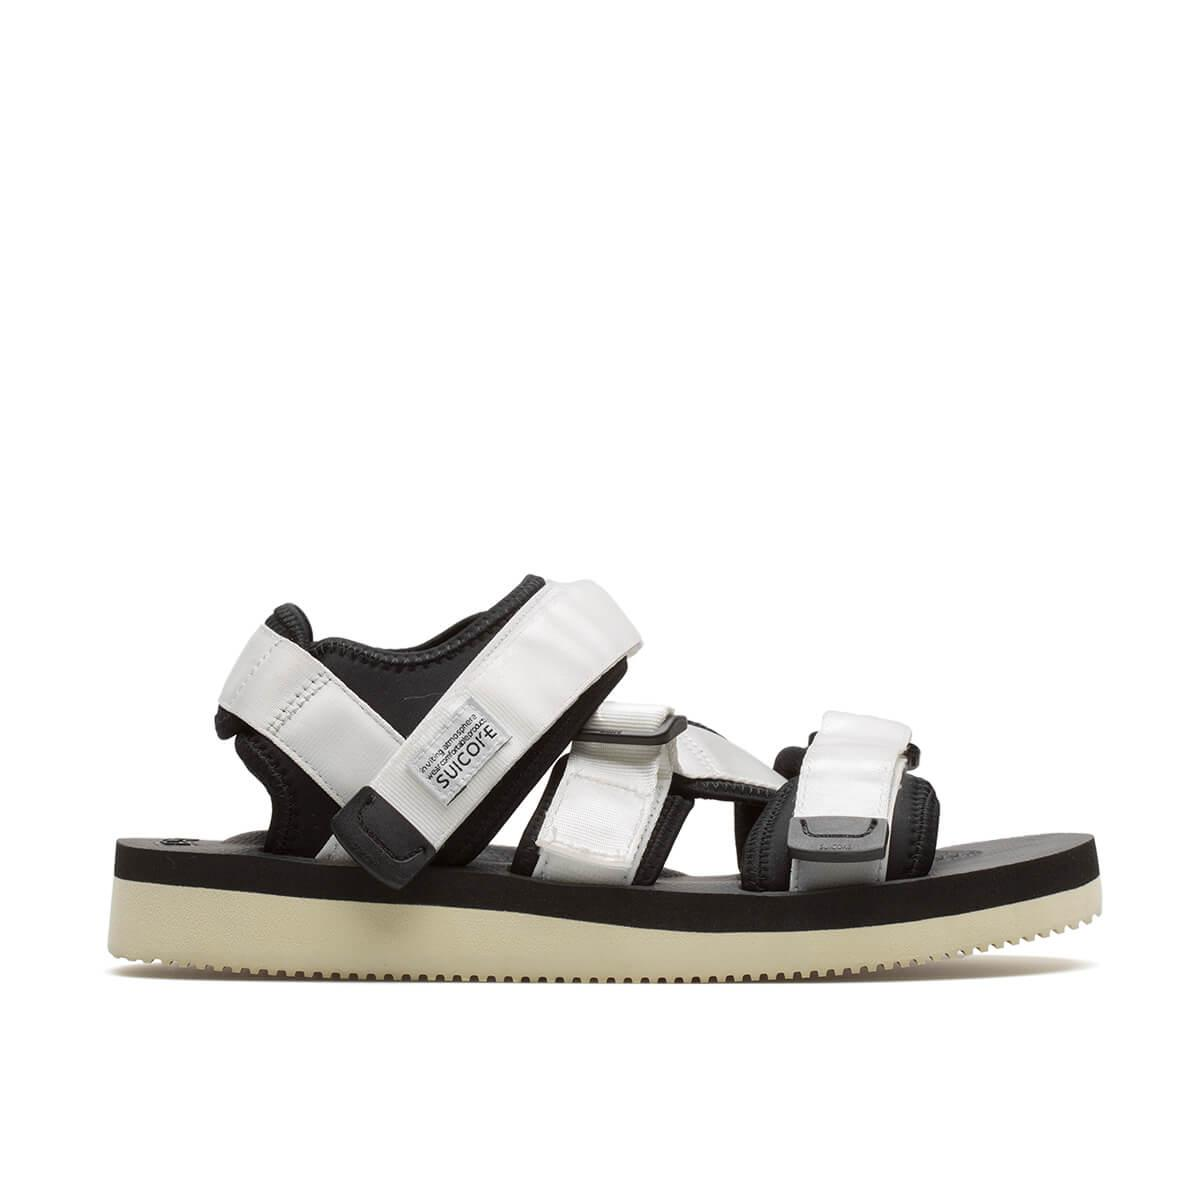 df63a62a58ad Suicoke Kisee-v Sandals in White for Men - Lyst